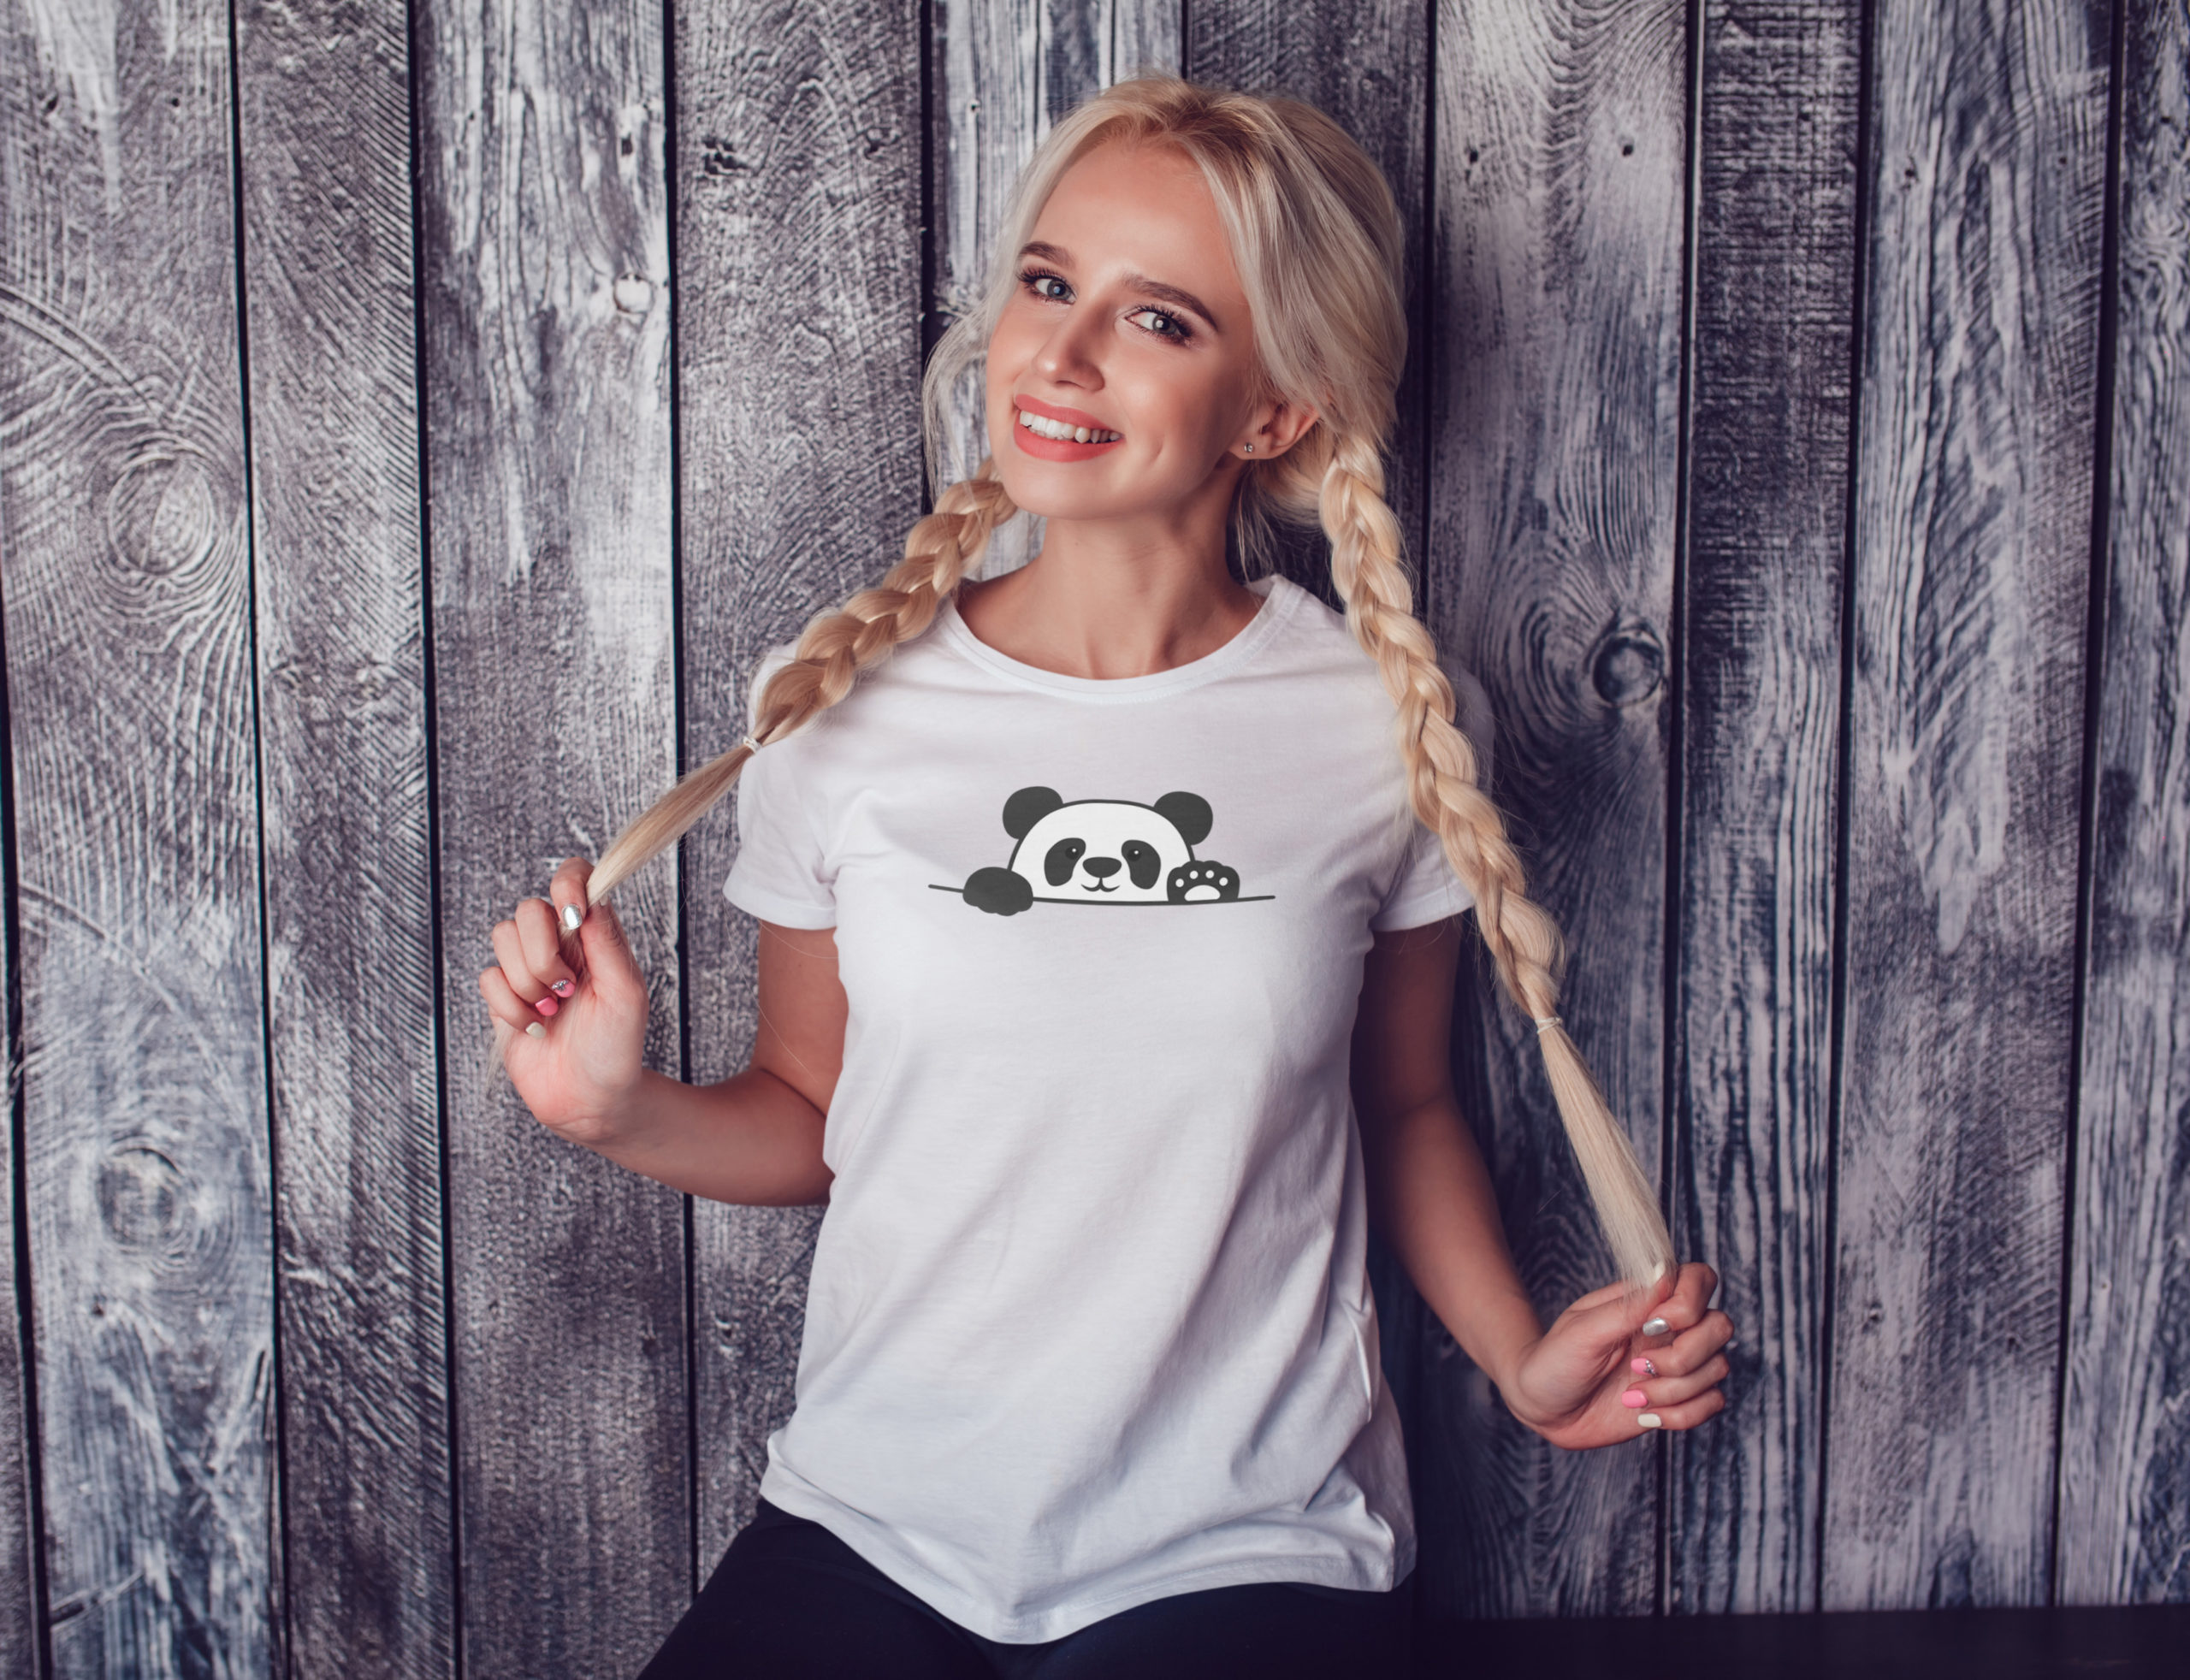 T-Shirt Eco - Create Organic Or Eco-Friendly T-Shirts, wholesale eco-friendly t-shirts